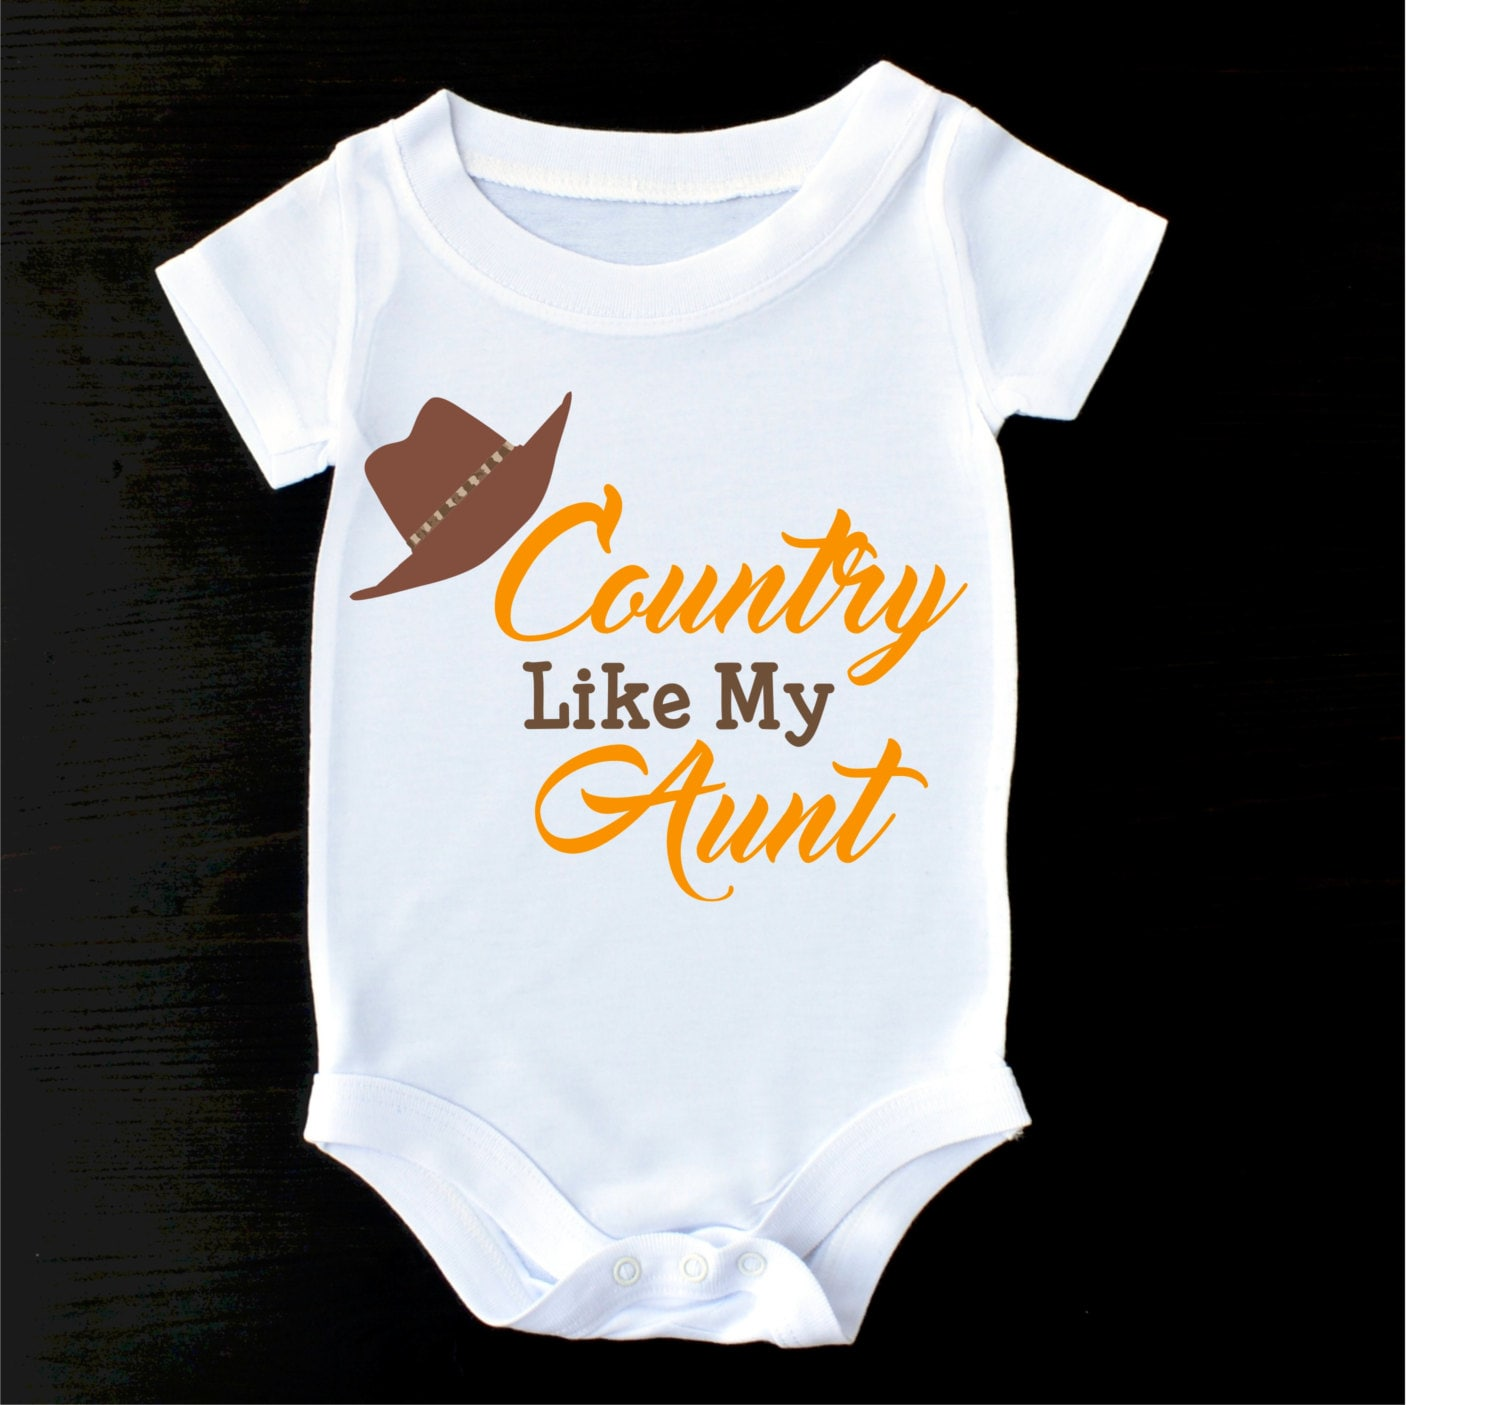 Shop for Country Music Baby Clothes & Accessories products from baby hats and blankets to baby bodysuits and t-shirts. We have the perfect gift for every newborn.